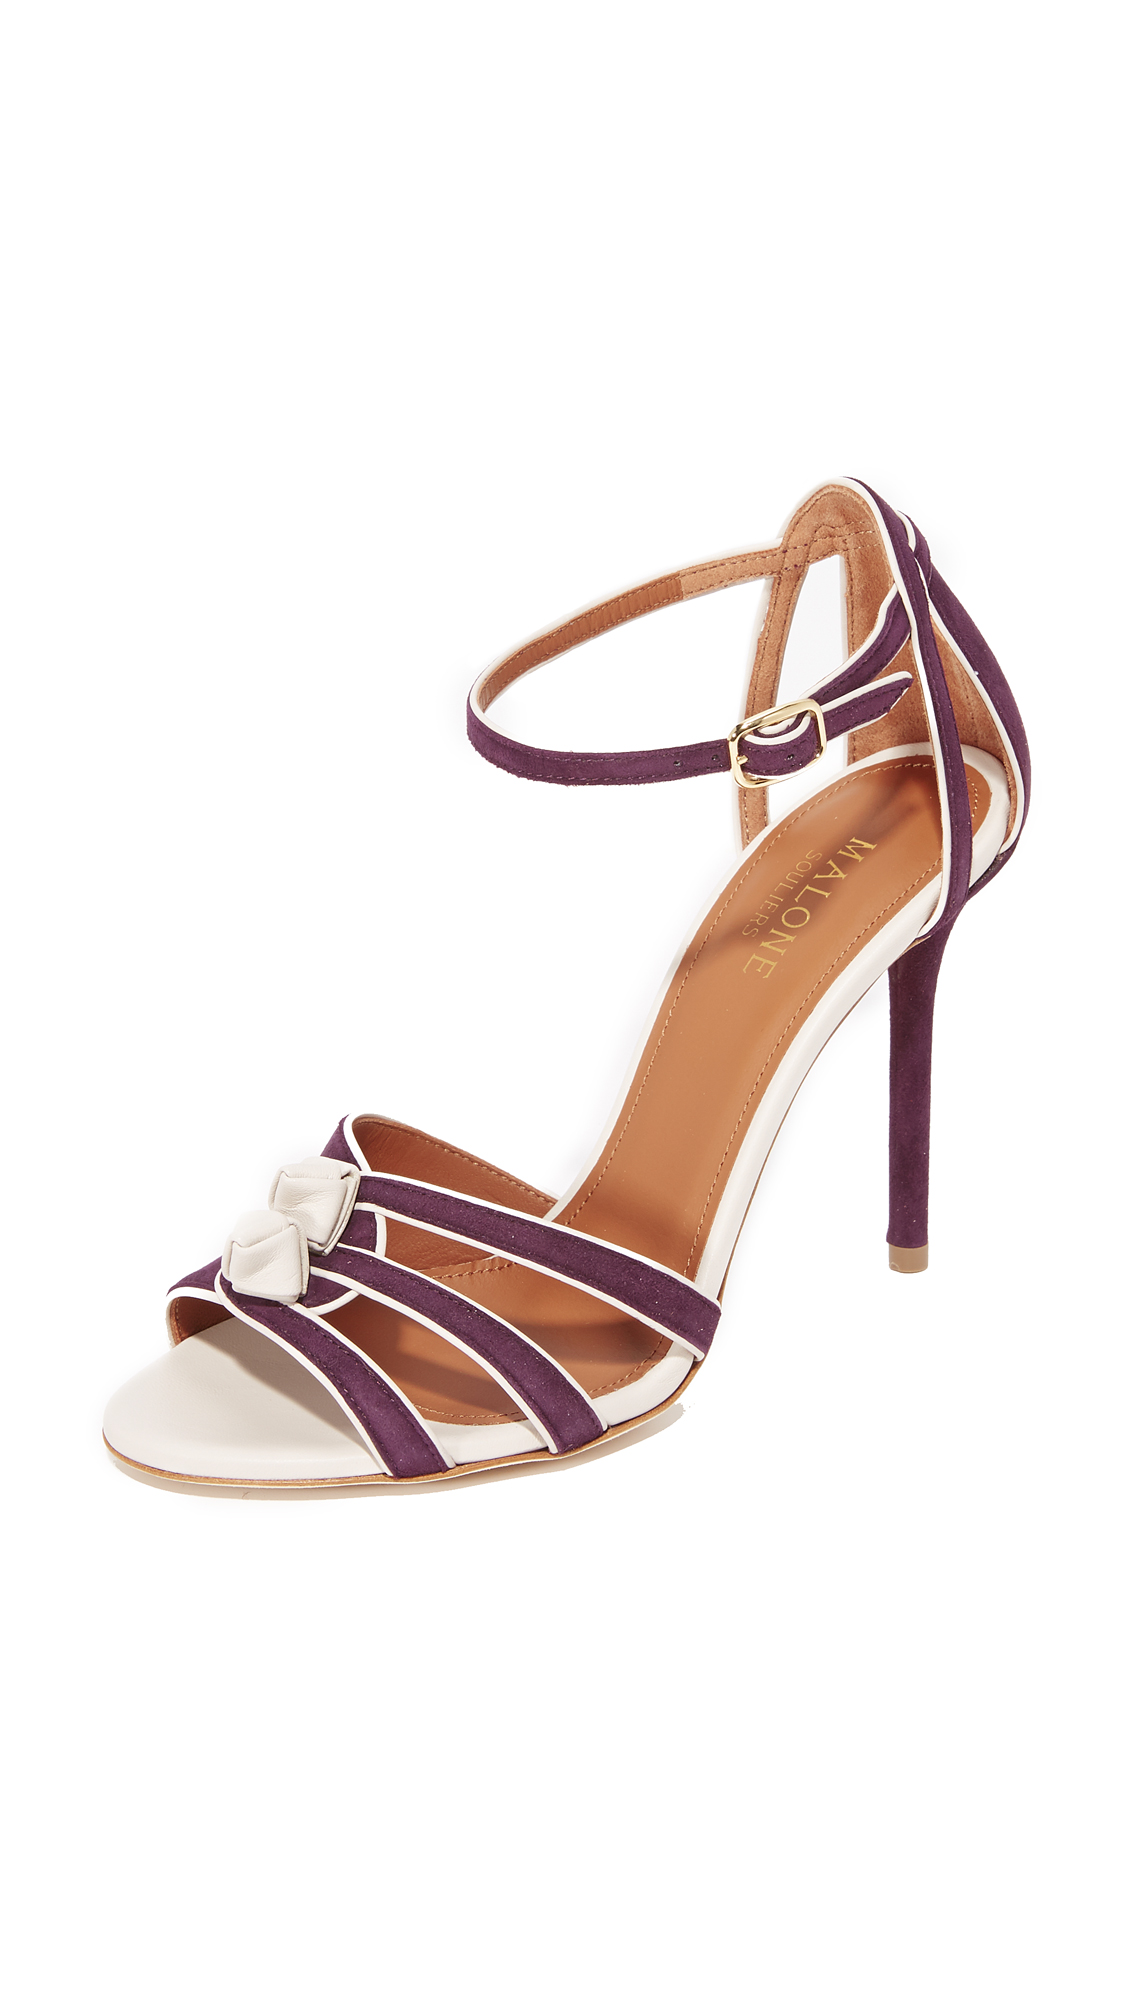 Malone Souliers Eunice Sandals - Plum/Light Grey